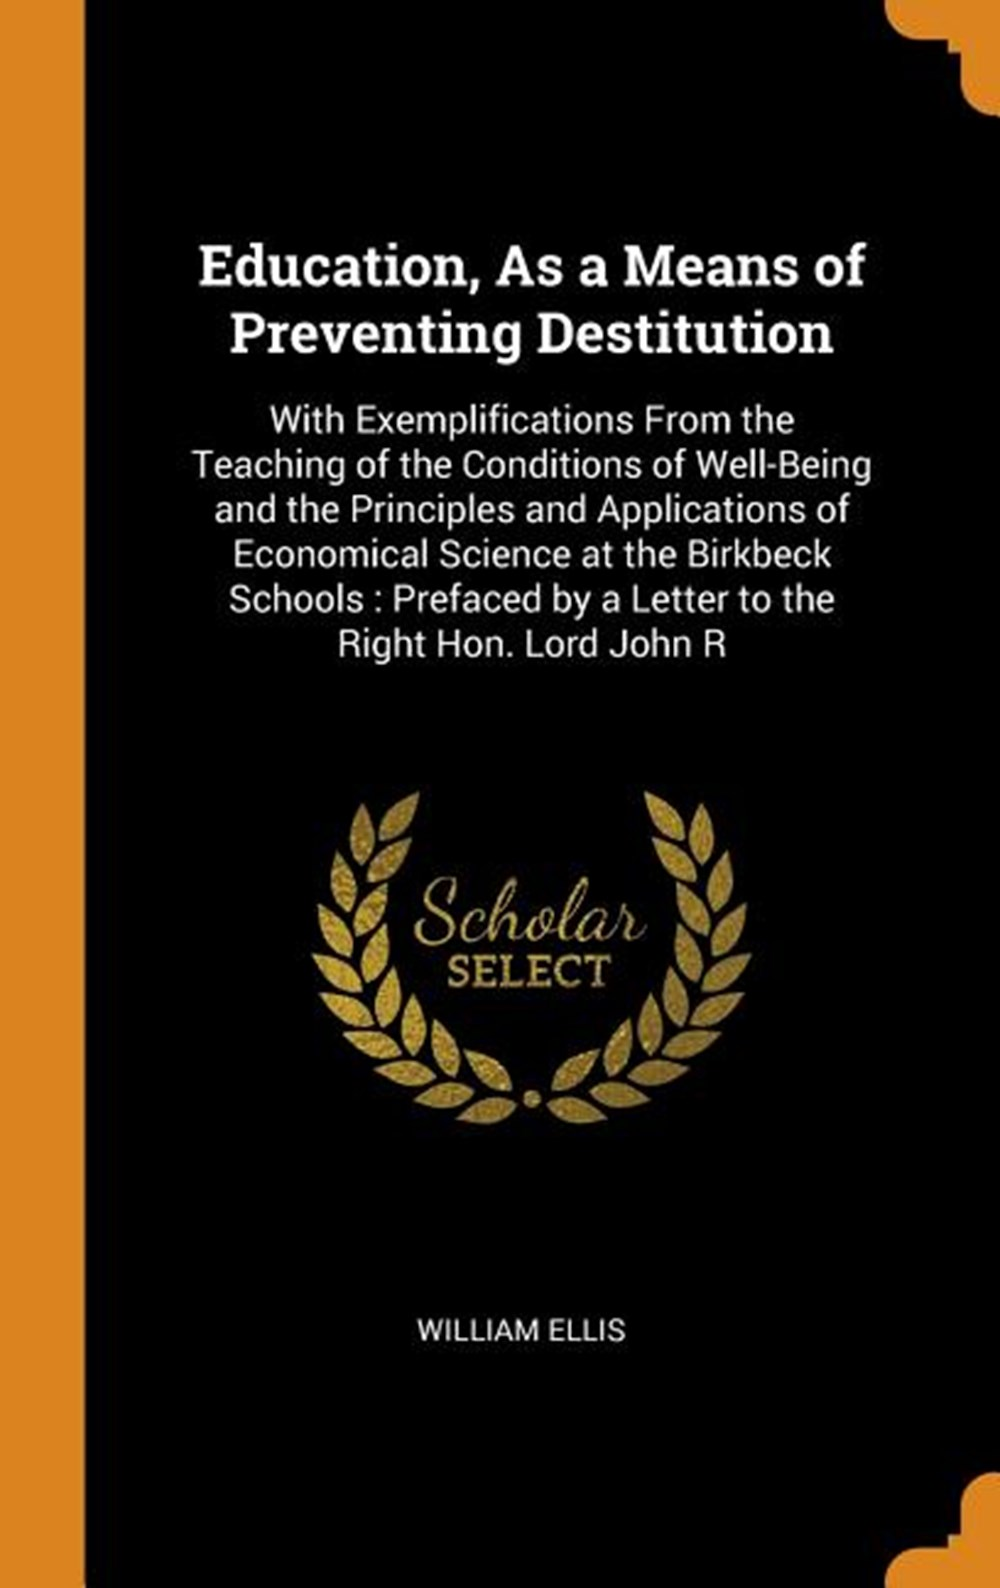 Education, as a Means of Preventing Destitution With Exemplifications from the Teaching of the Condi